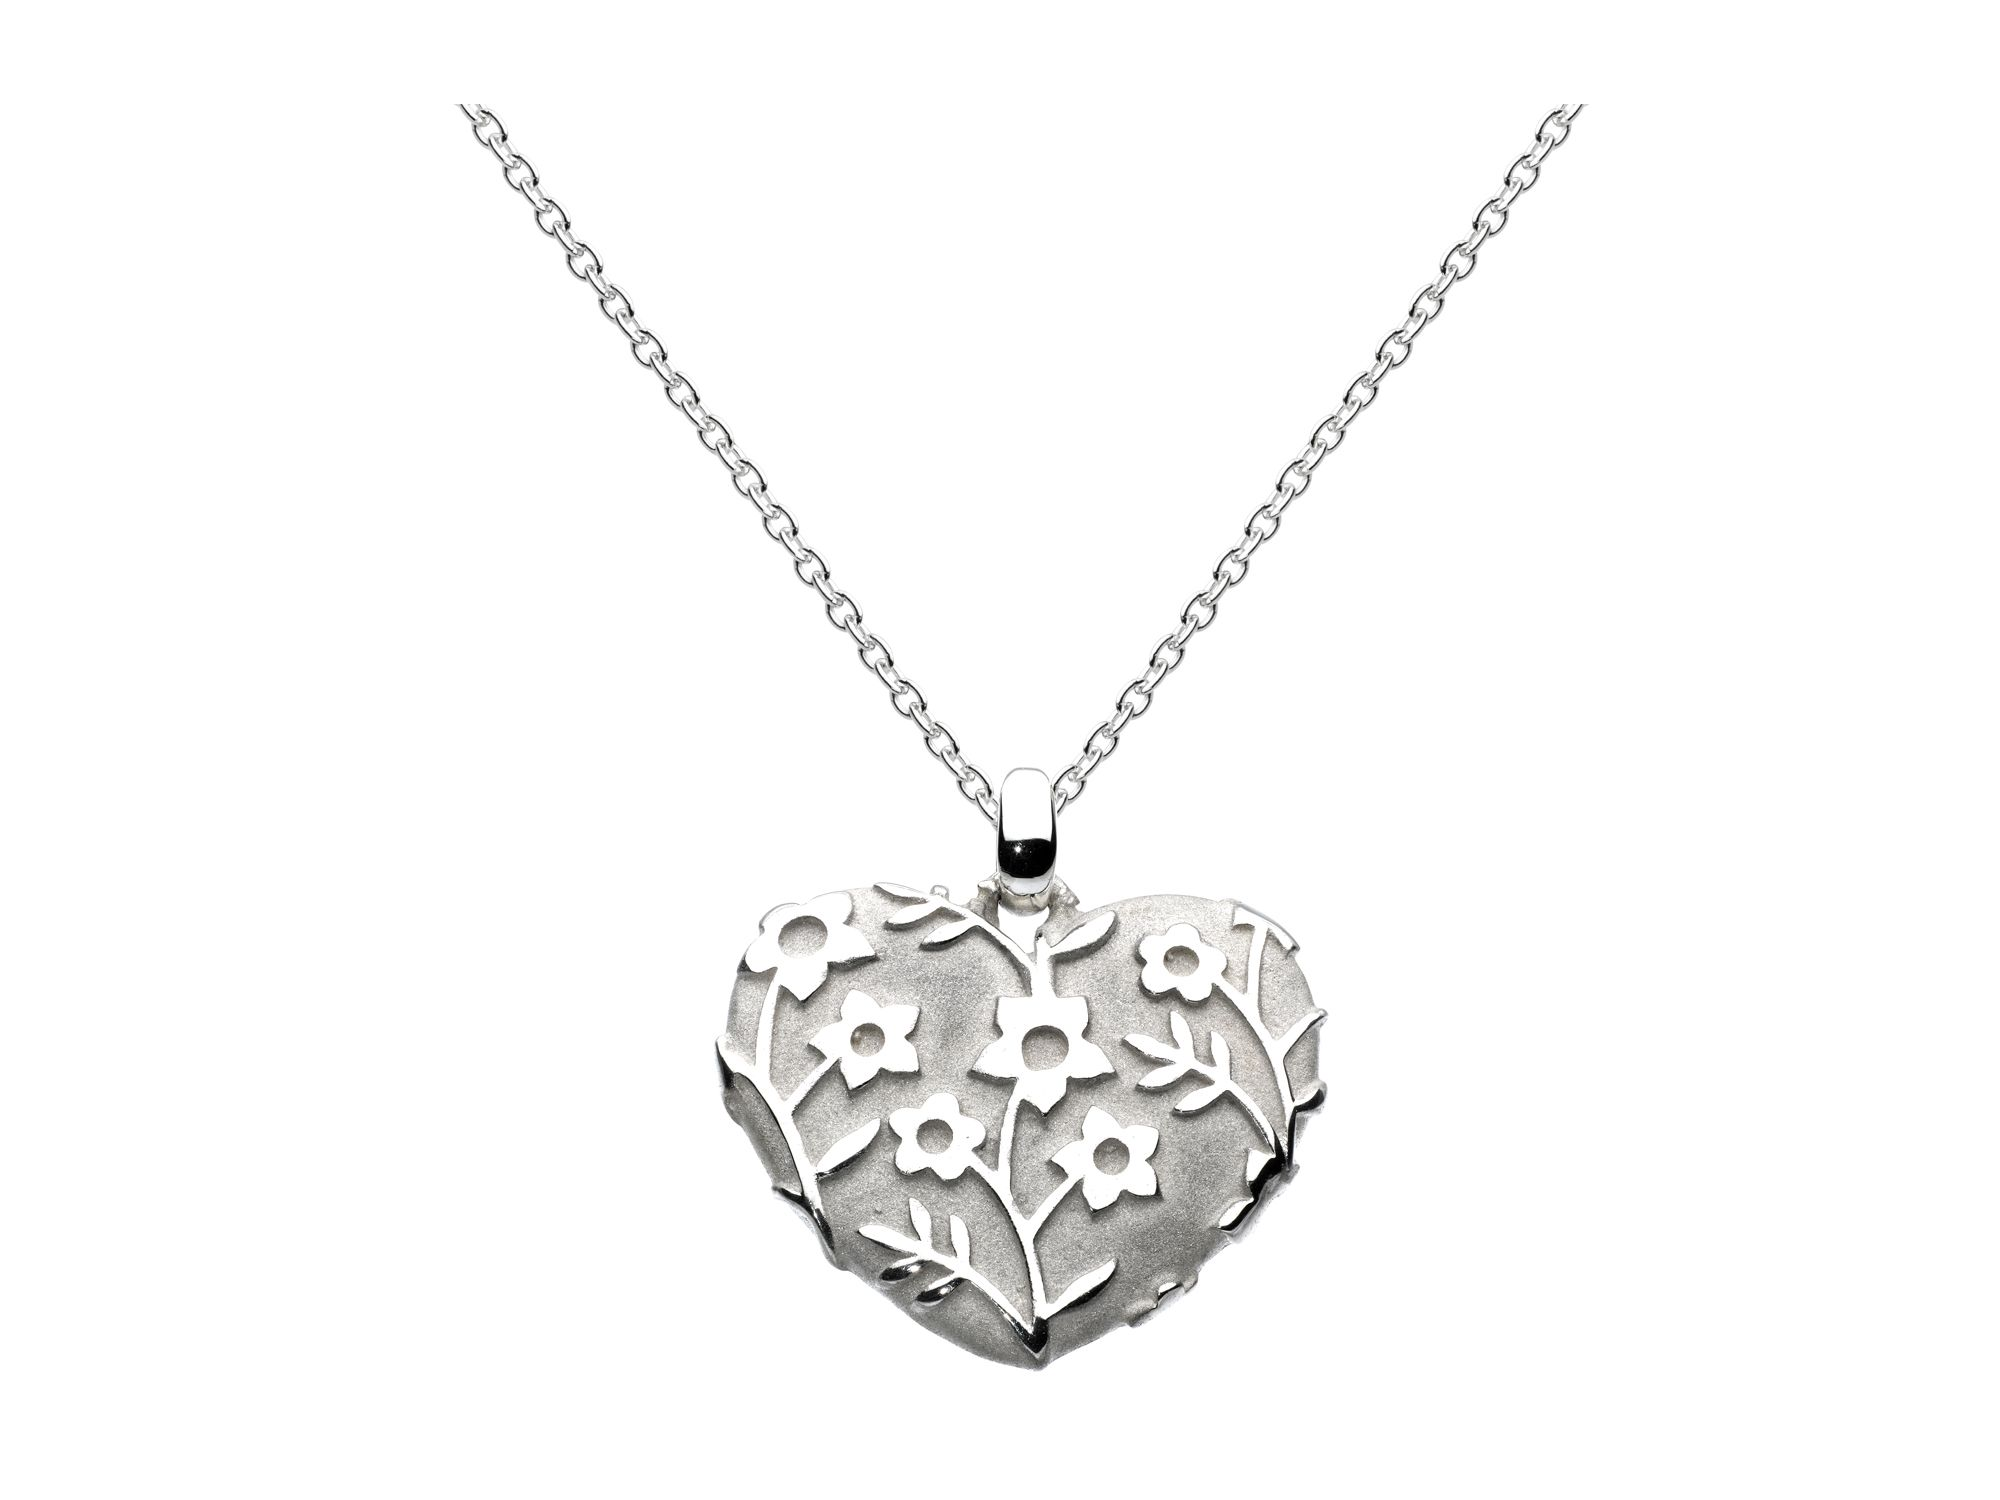 Sterling silver forget-me-not heart necklace